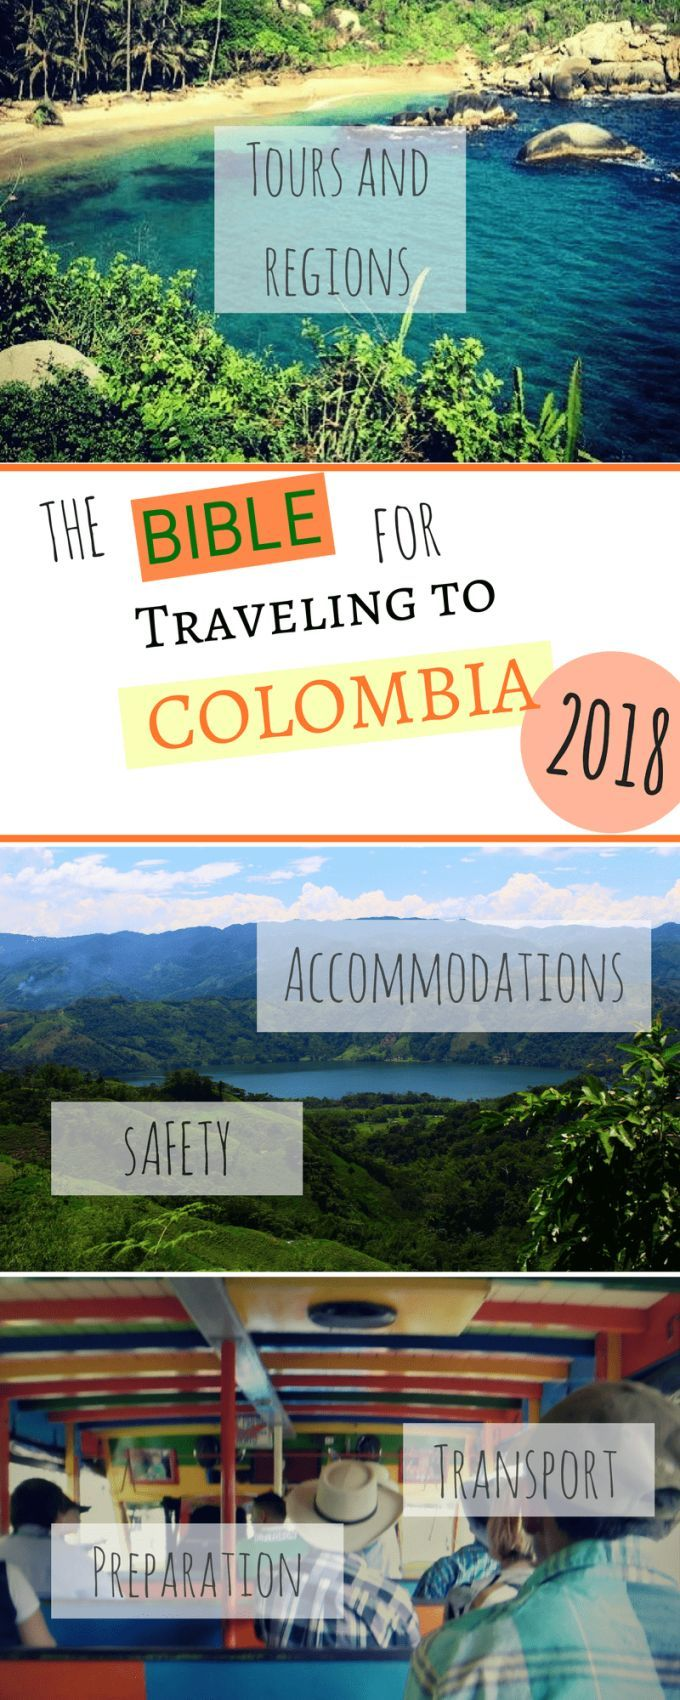 Plan a trip to Colombia. The bible for backpacking in Colombia. What do you need for Colombia: Accommodation in Colombia, tips for Colombia, Is Colombia safe? Food in Colombia, culture in Colombia, What kind of transportation, best hostels #Backpacking #Colombia